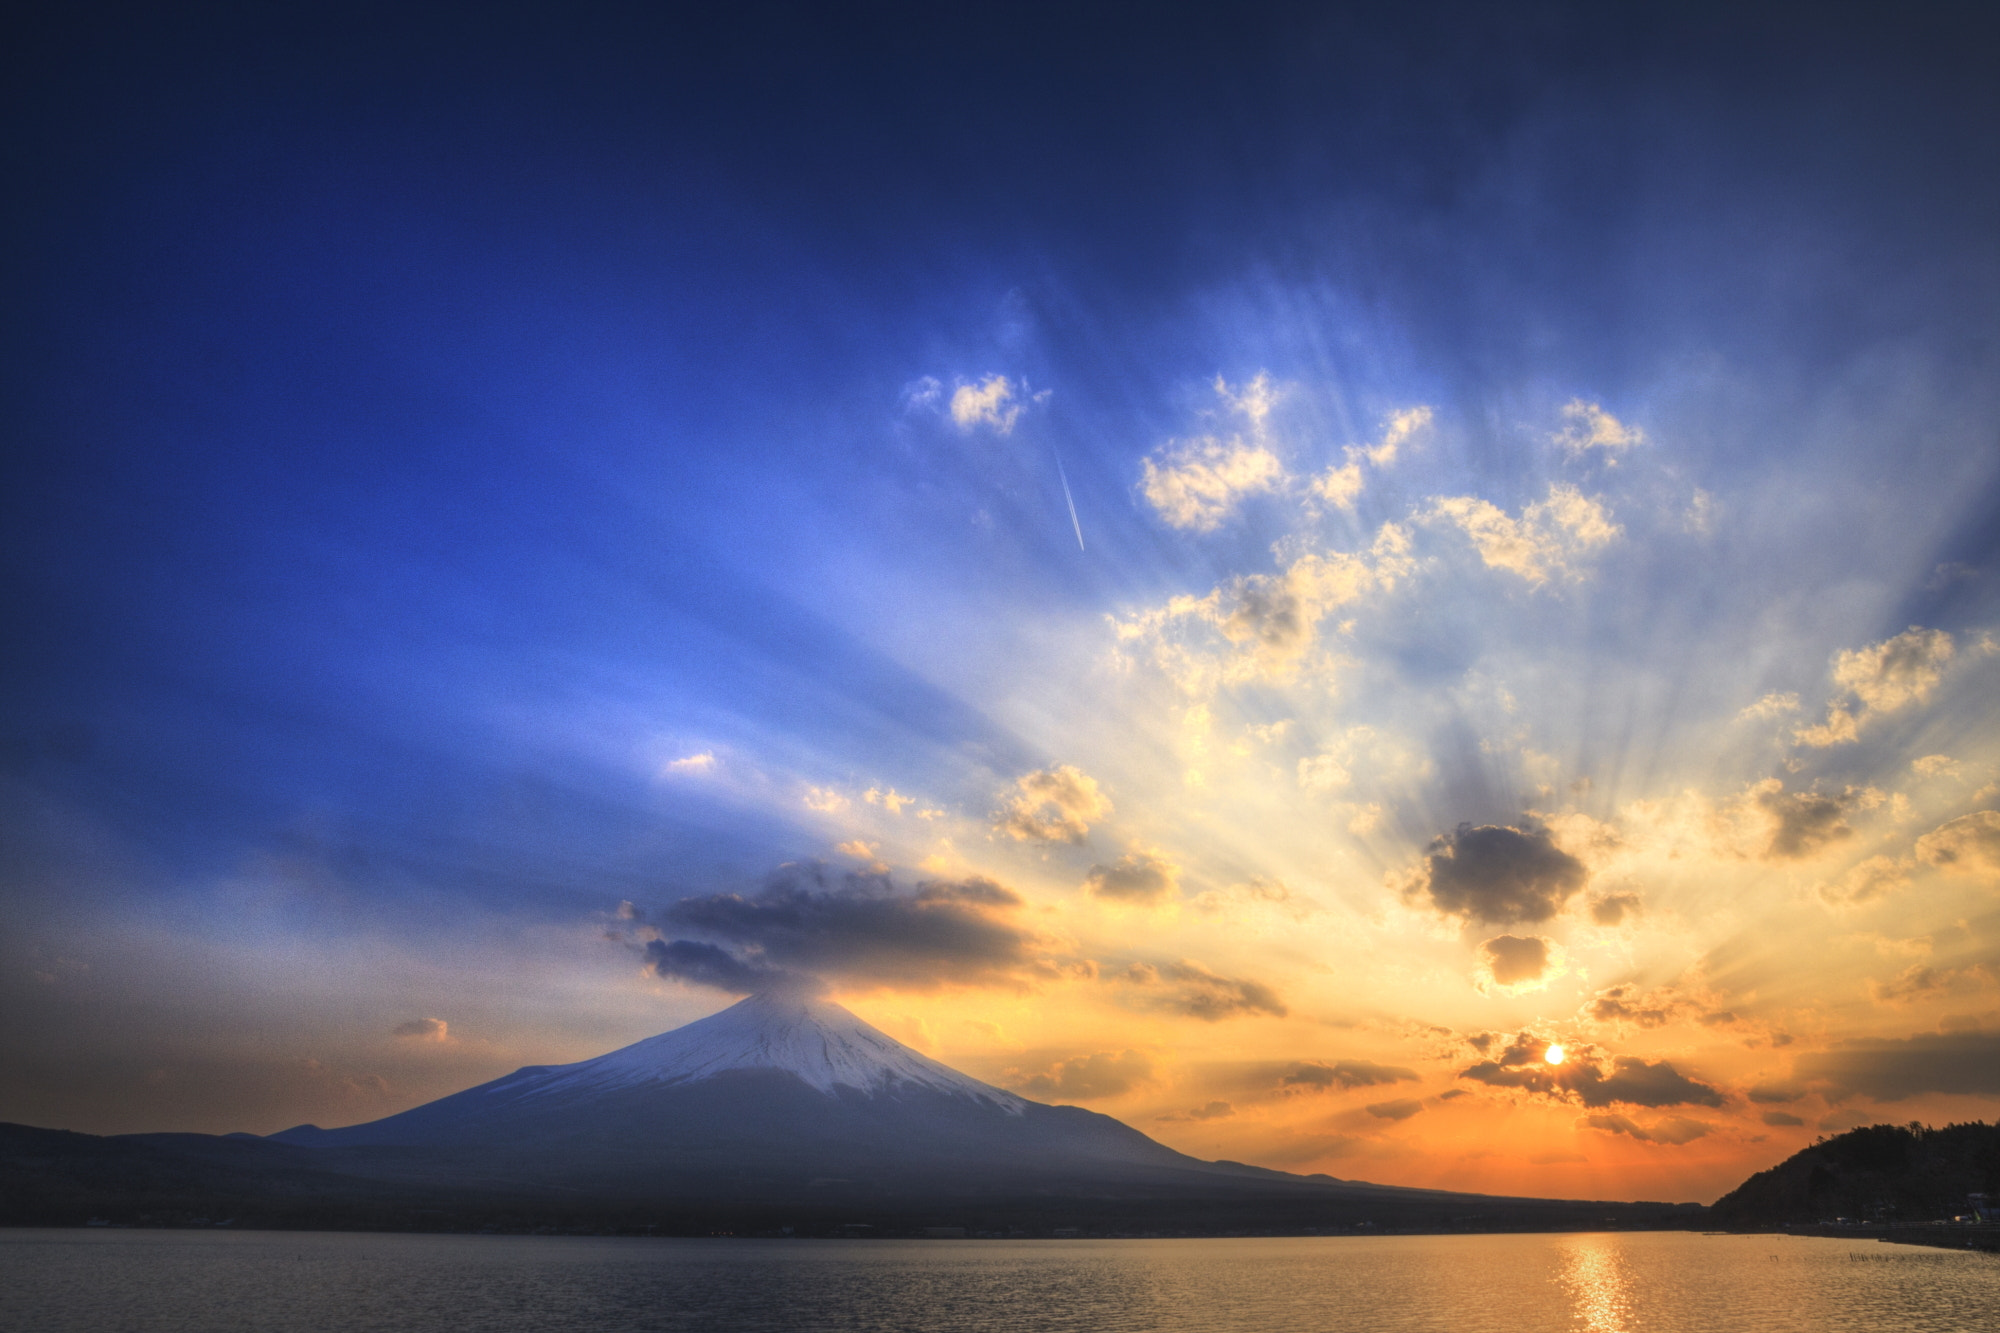 Photograph Mt,Fuji 富士山 by hhhhhhhhhhh on 500px